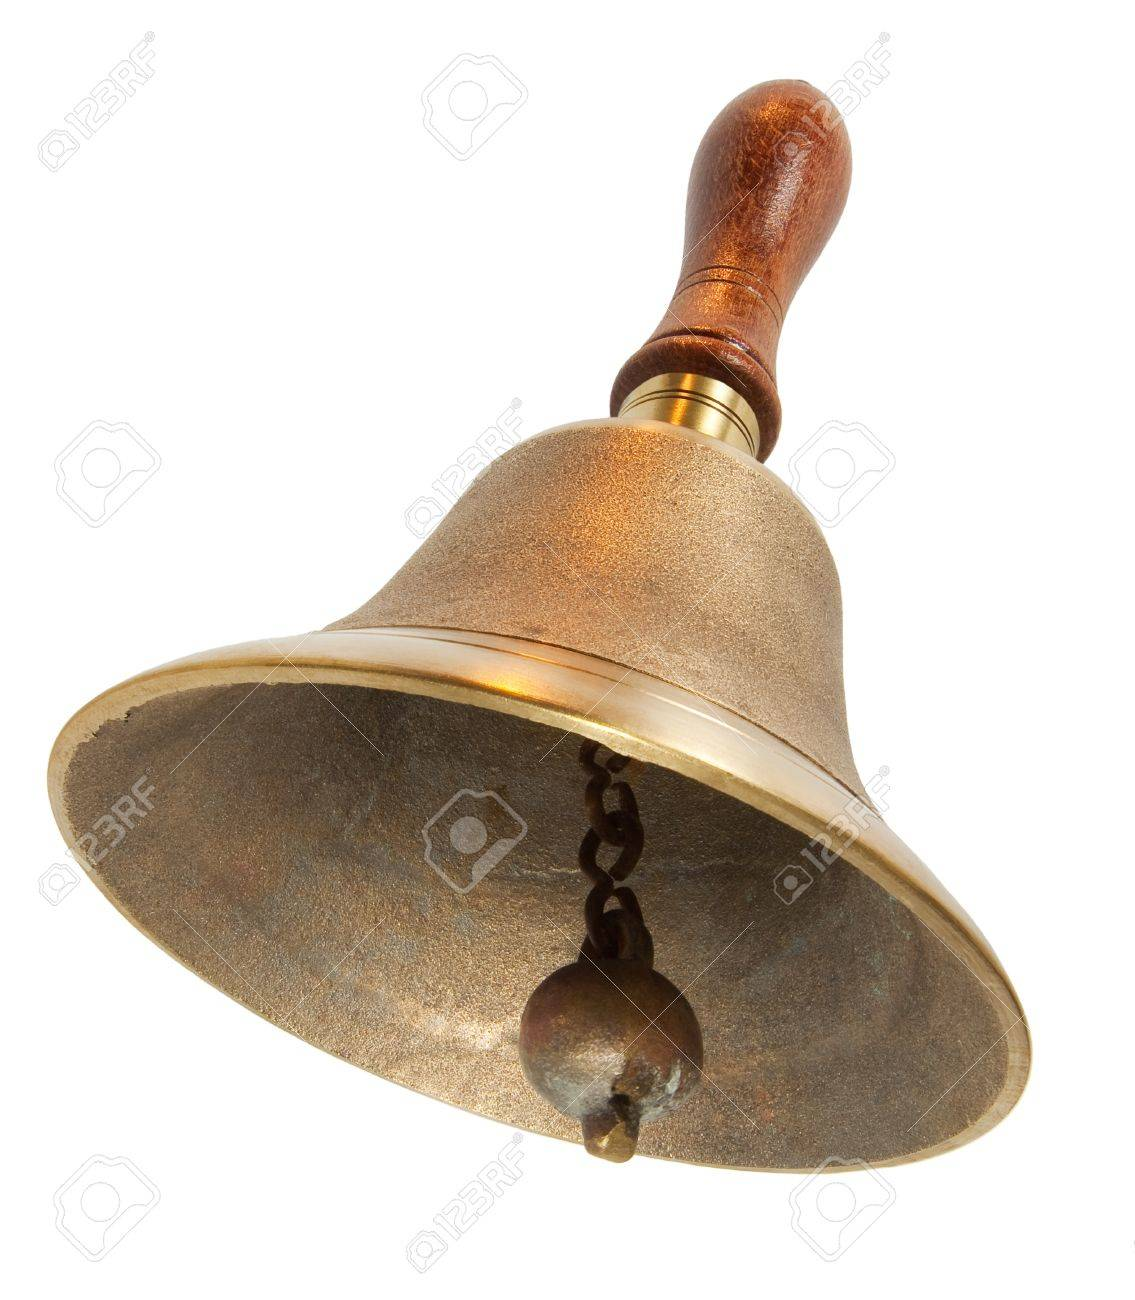 Brass Handbell with Wooden Handle Stock Photo - 12812727